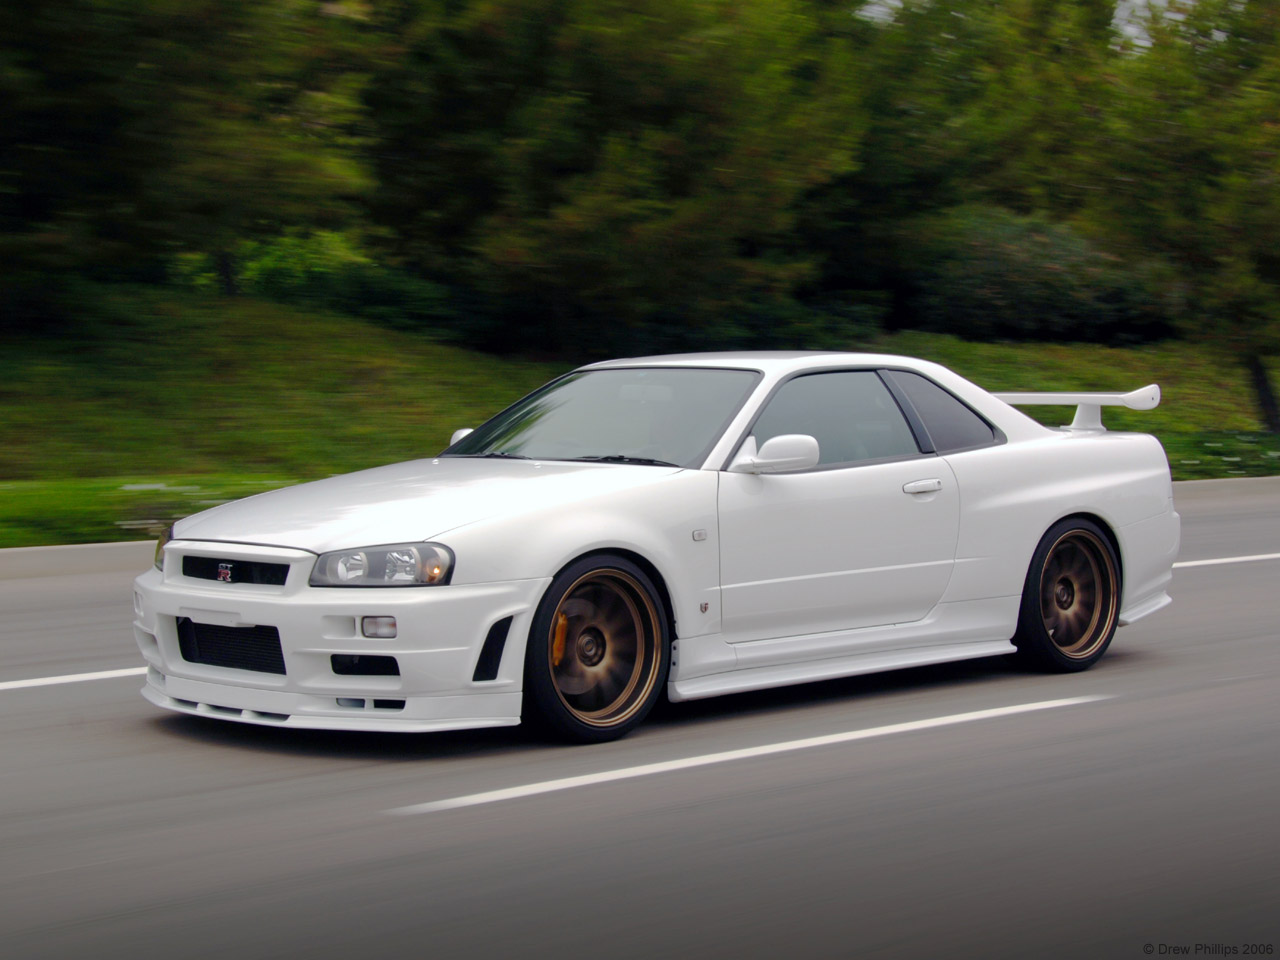 Nissan Skyline R34 Gtr Its My Car Club